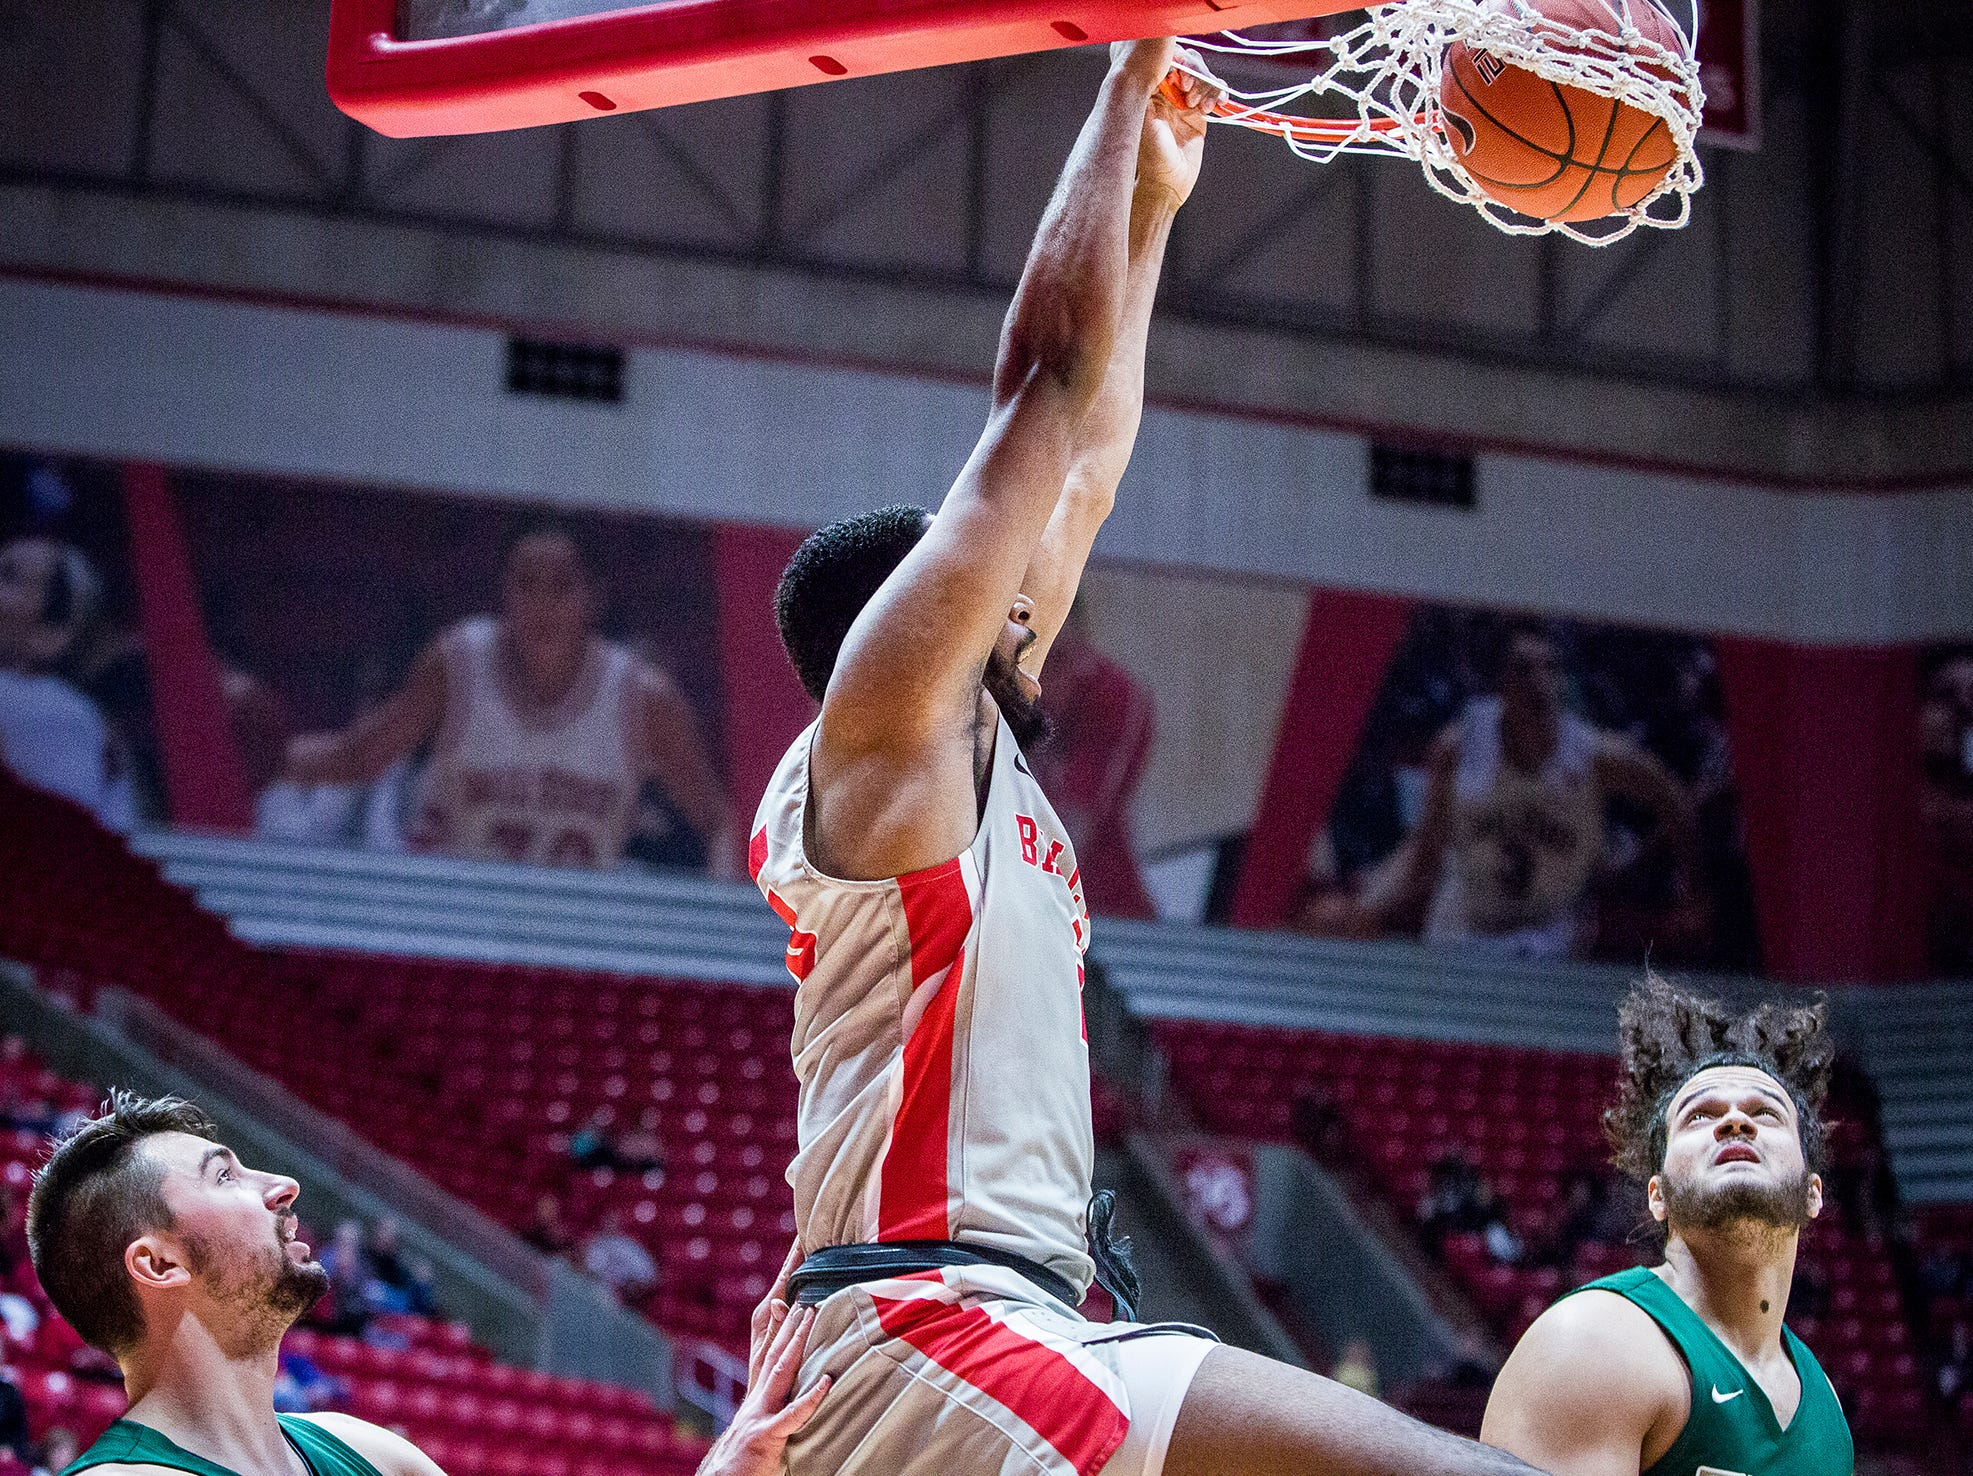 Ball State's Tahjai Teague dunks past Tiffin's defense during their game at Worthen Arena Tuesday, Nov. 27, 2018.